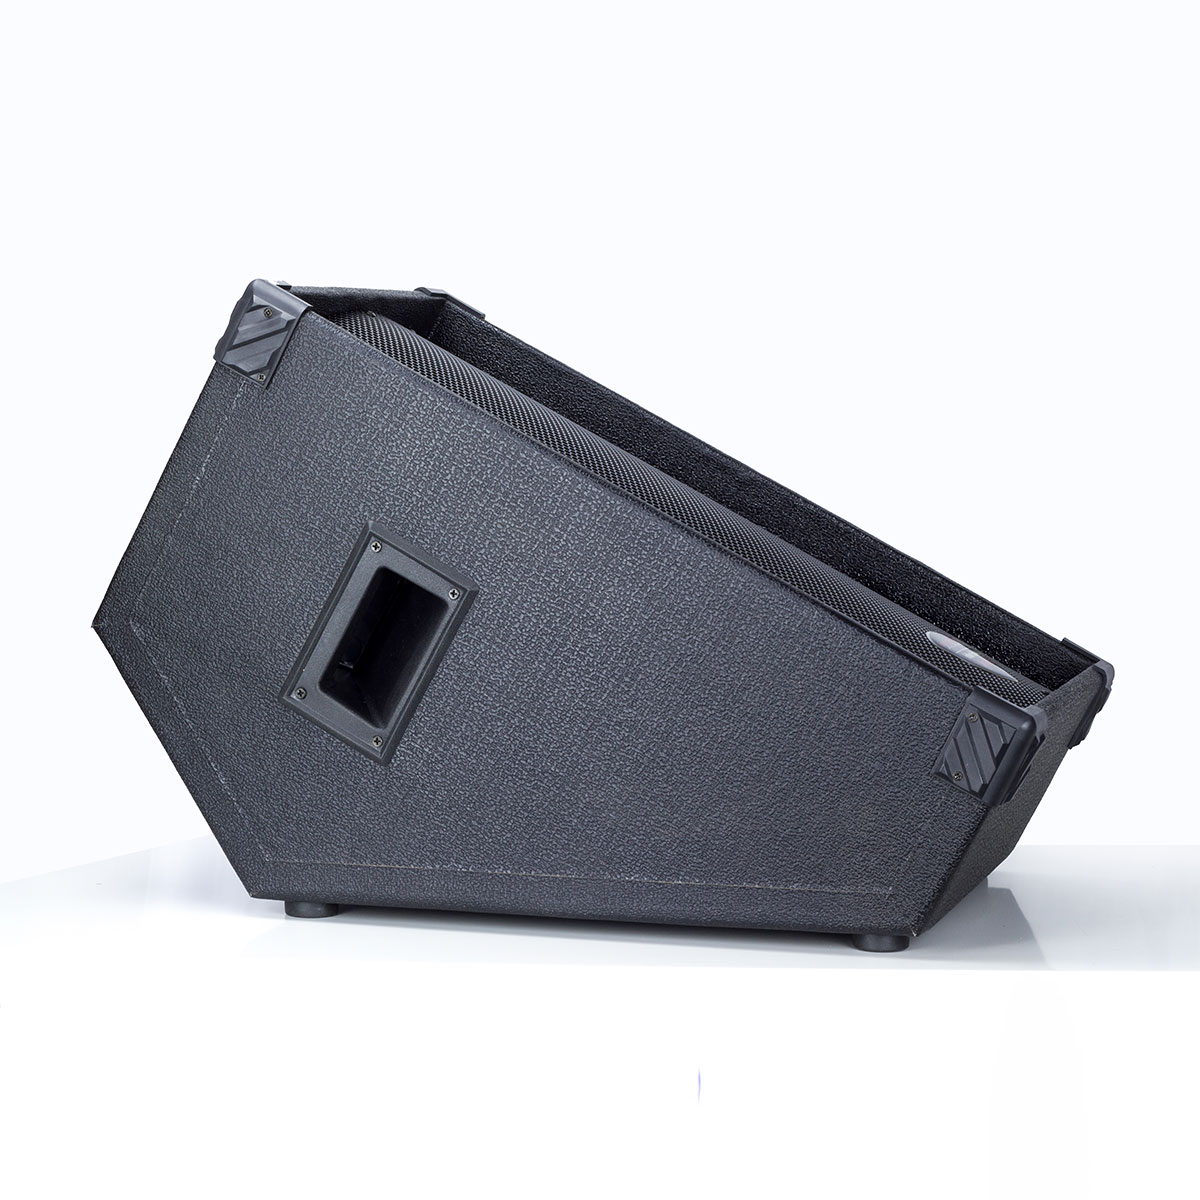 Pfw 12 Two Way Floor Wedge Monitor With 12 Woofer Nady